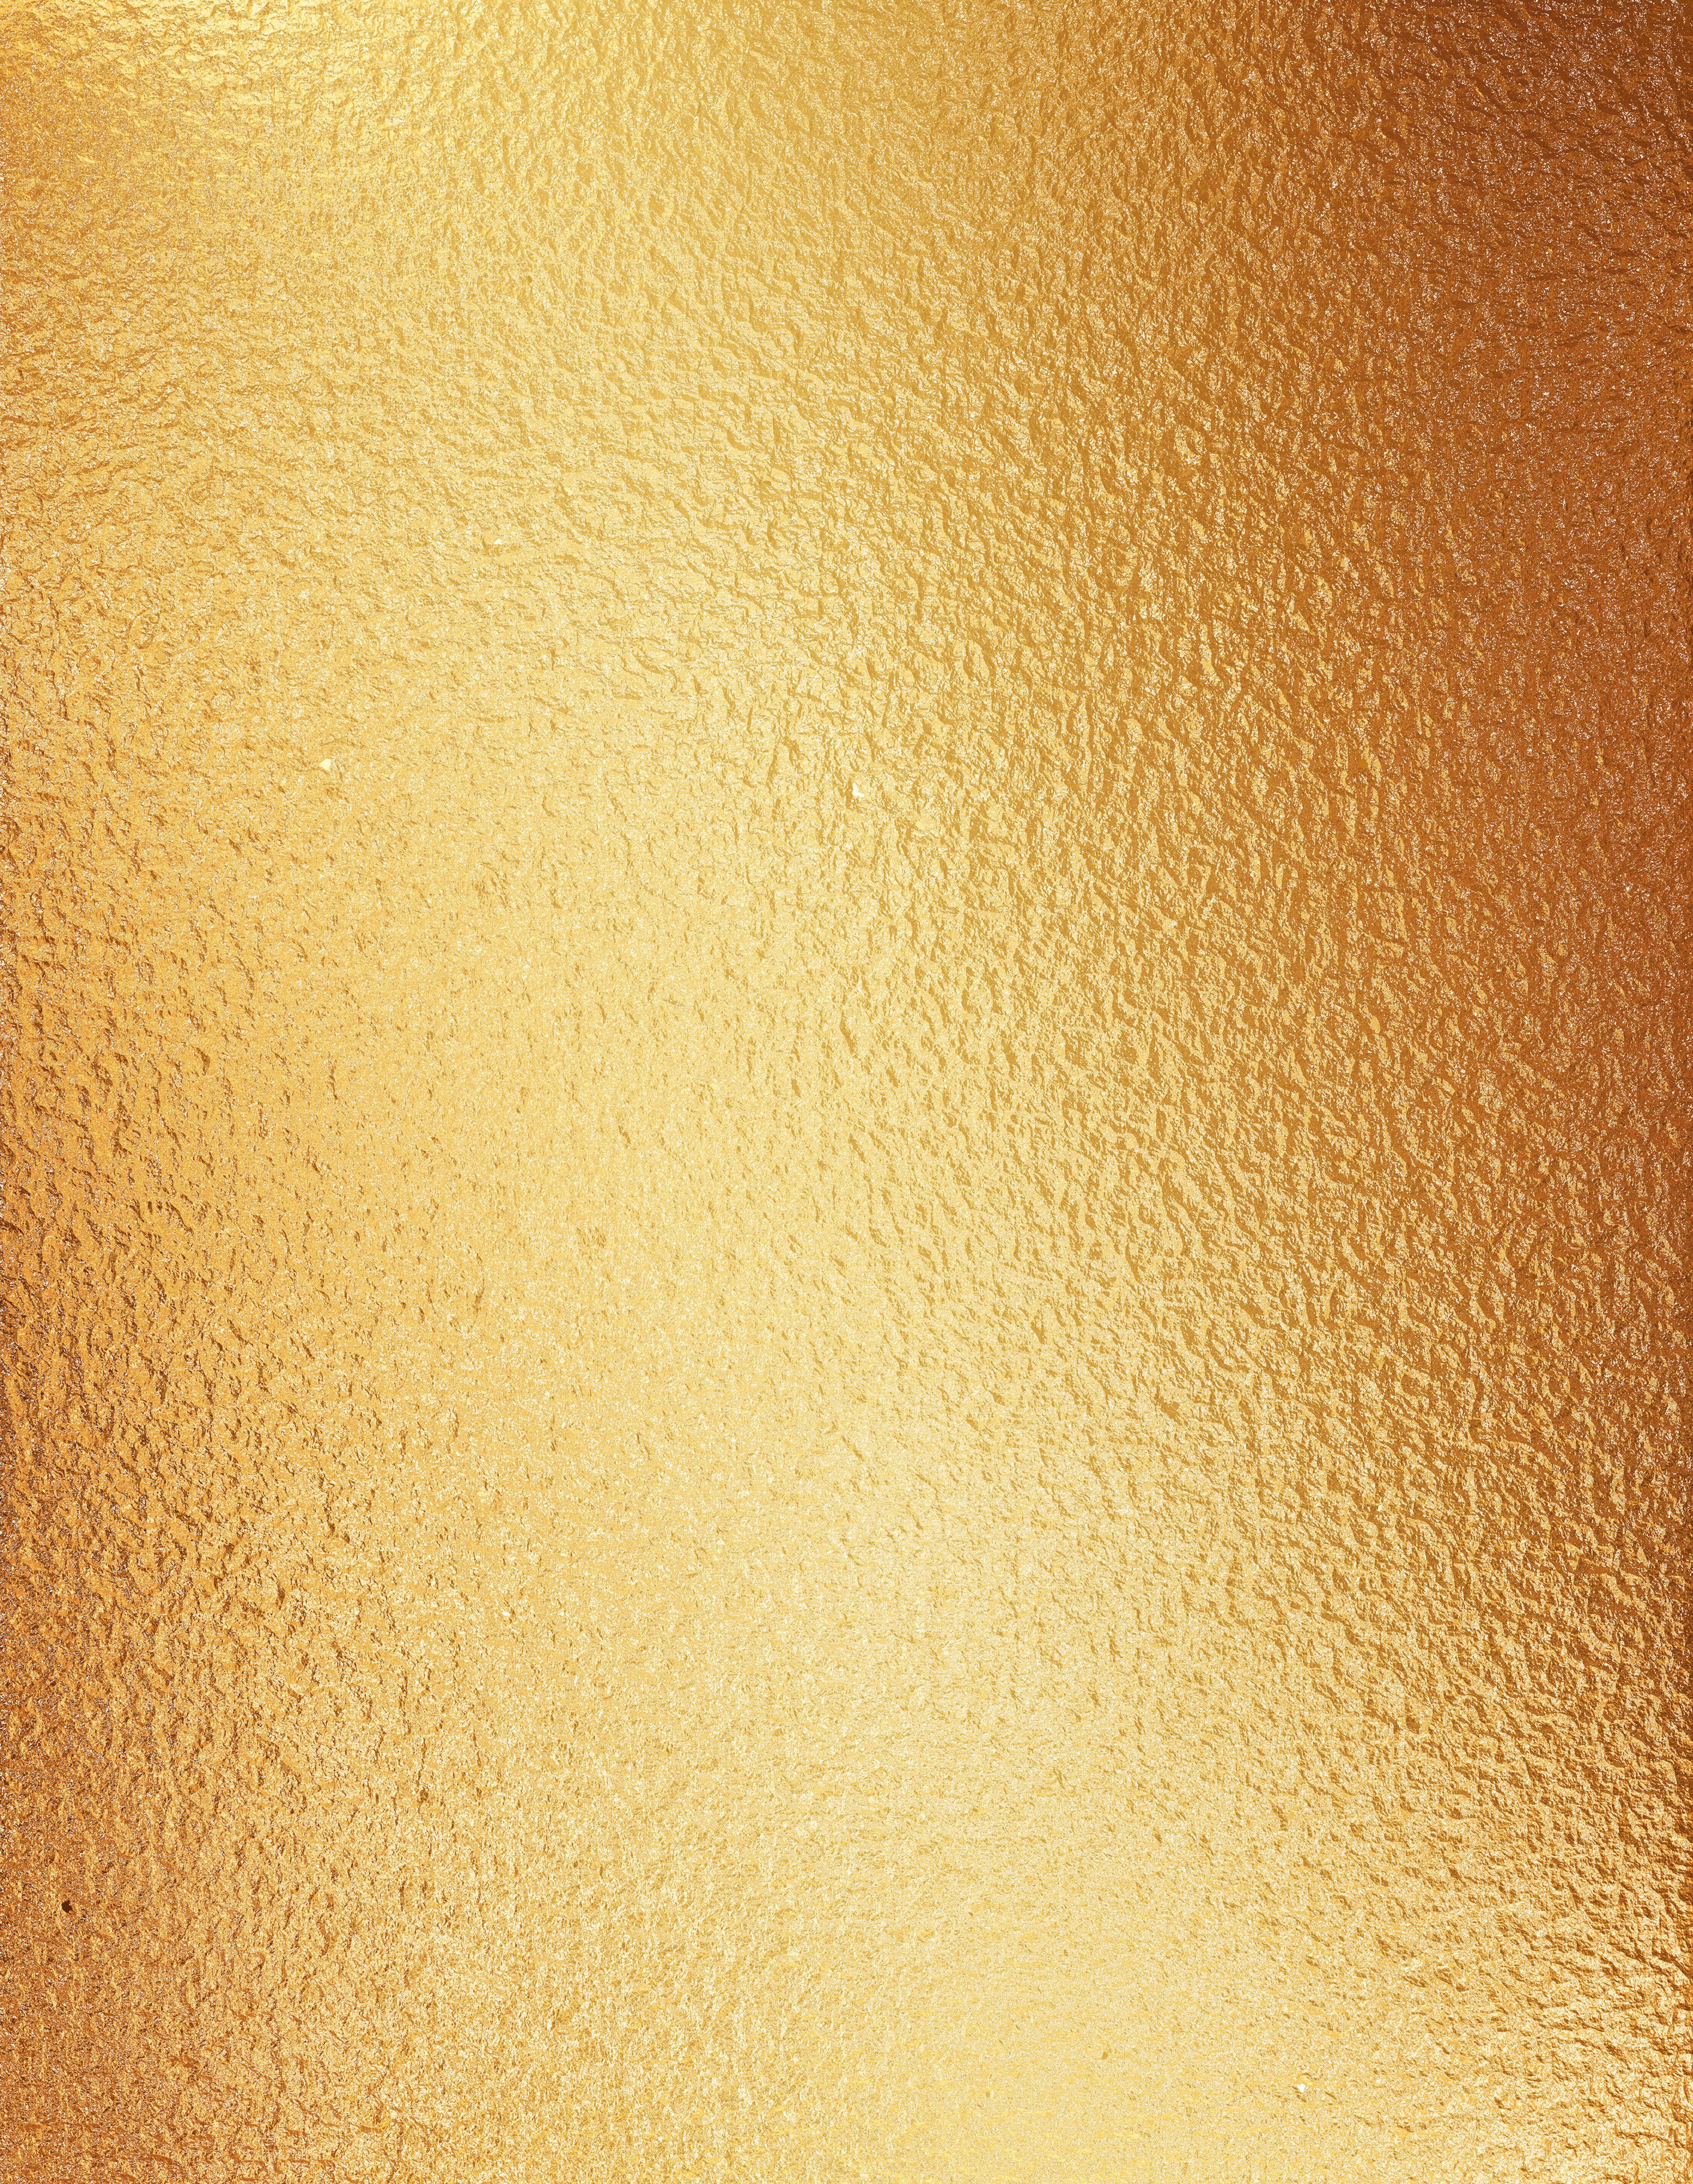 Free Gold Foil Texture How to Make A Shiny Shiny Effect with Shop Gold Foil